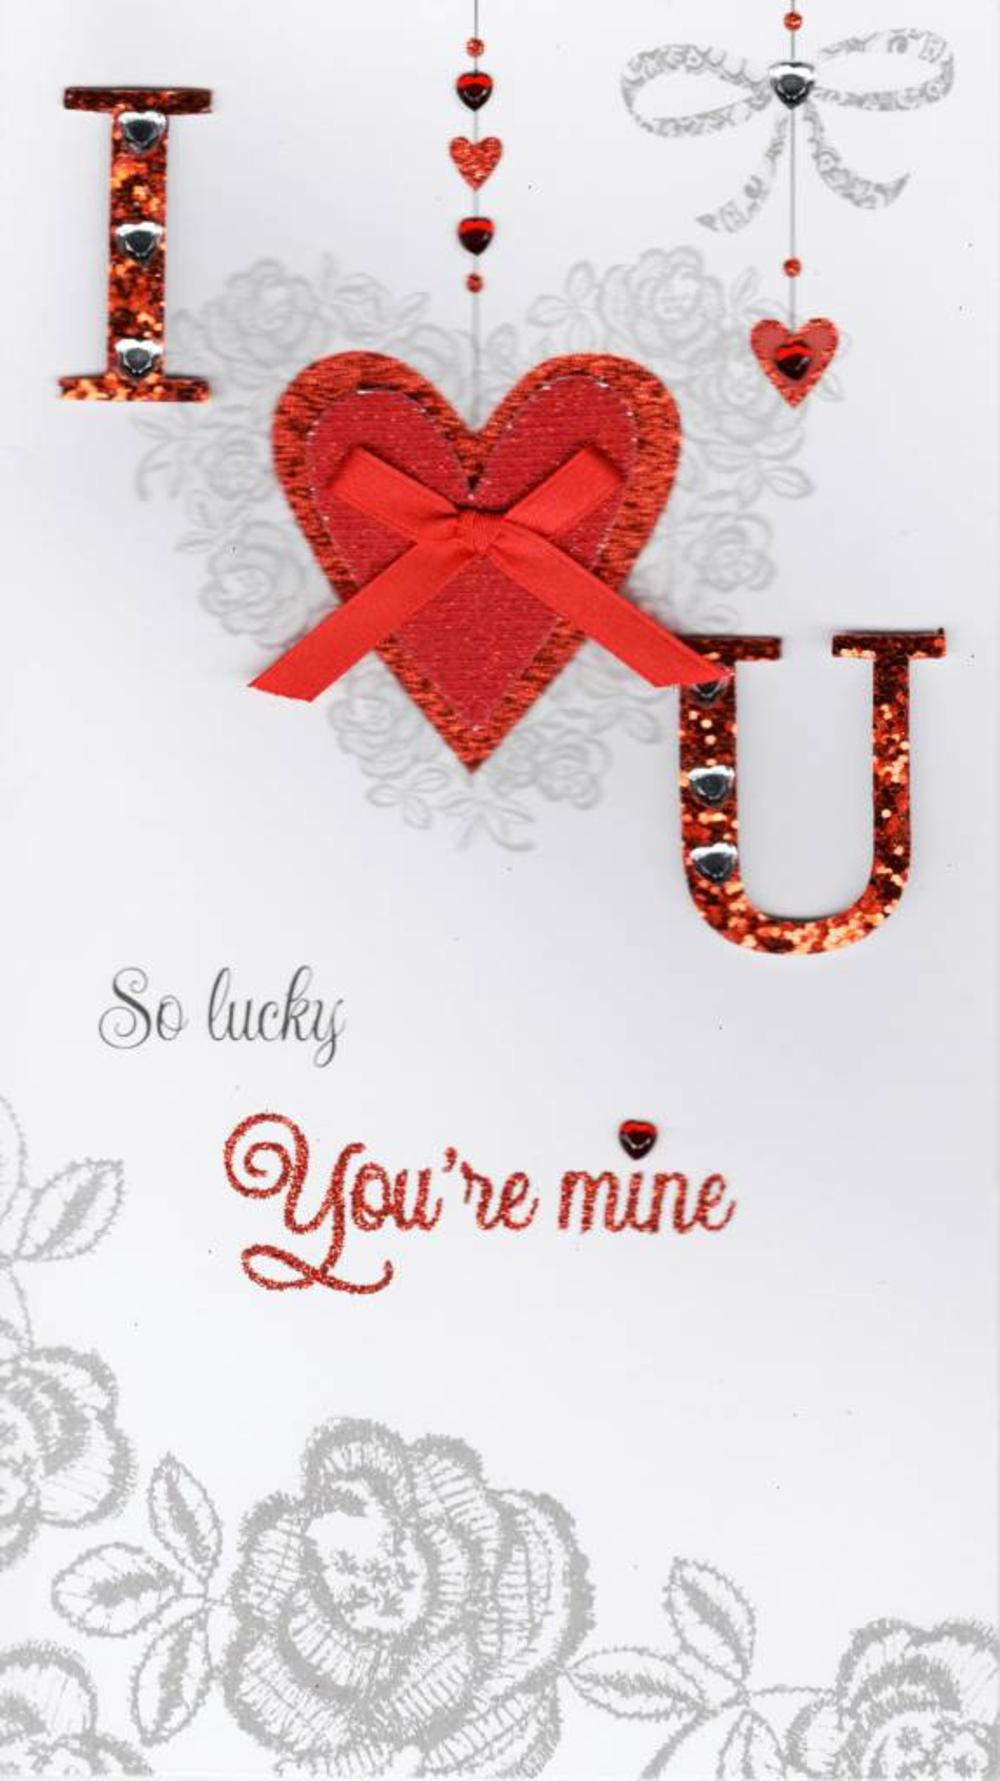 I Love You Lovely Valentine's Day Greeting Card